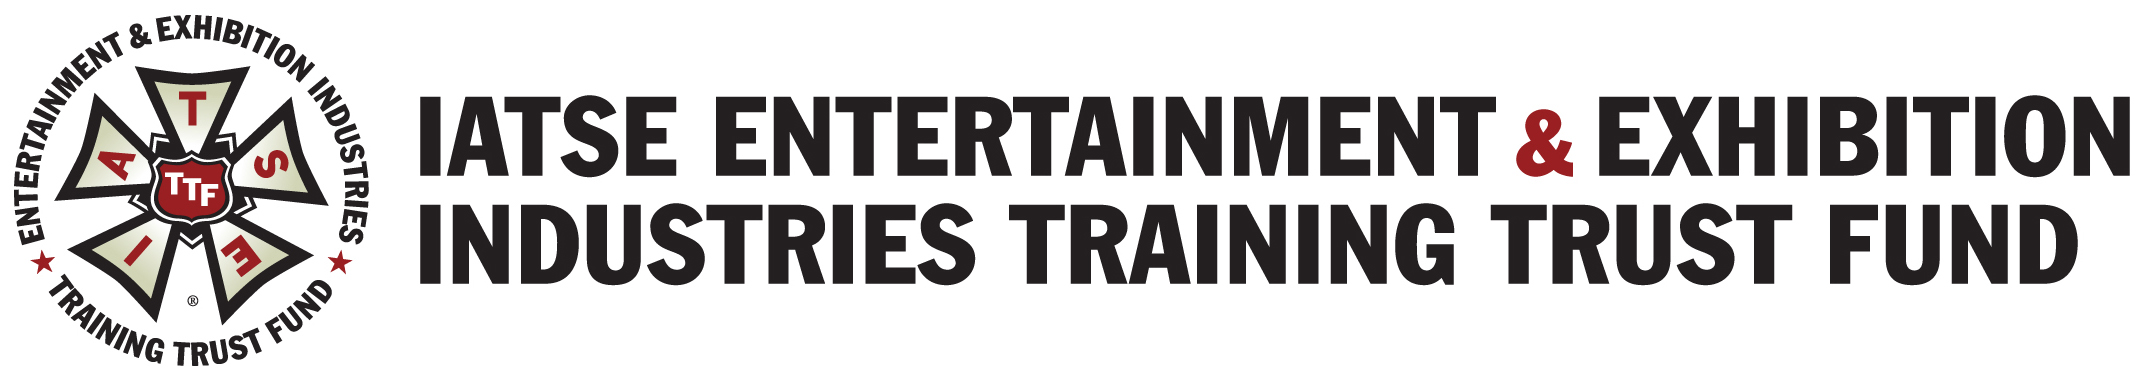 IATSE Entertainment and Exhibition Industries Training Trust Fund